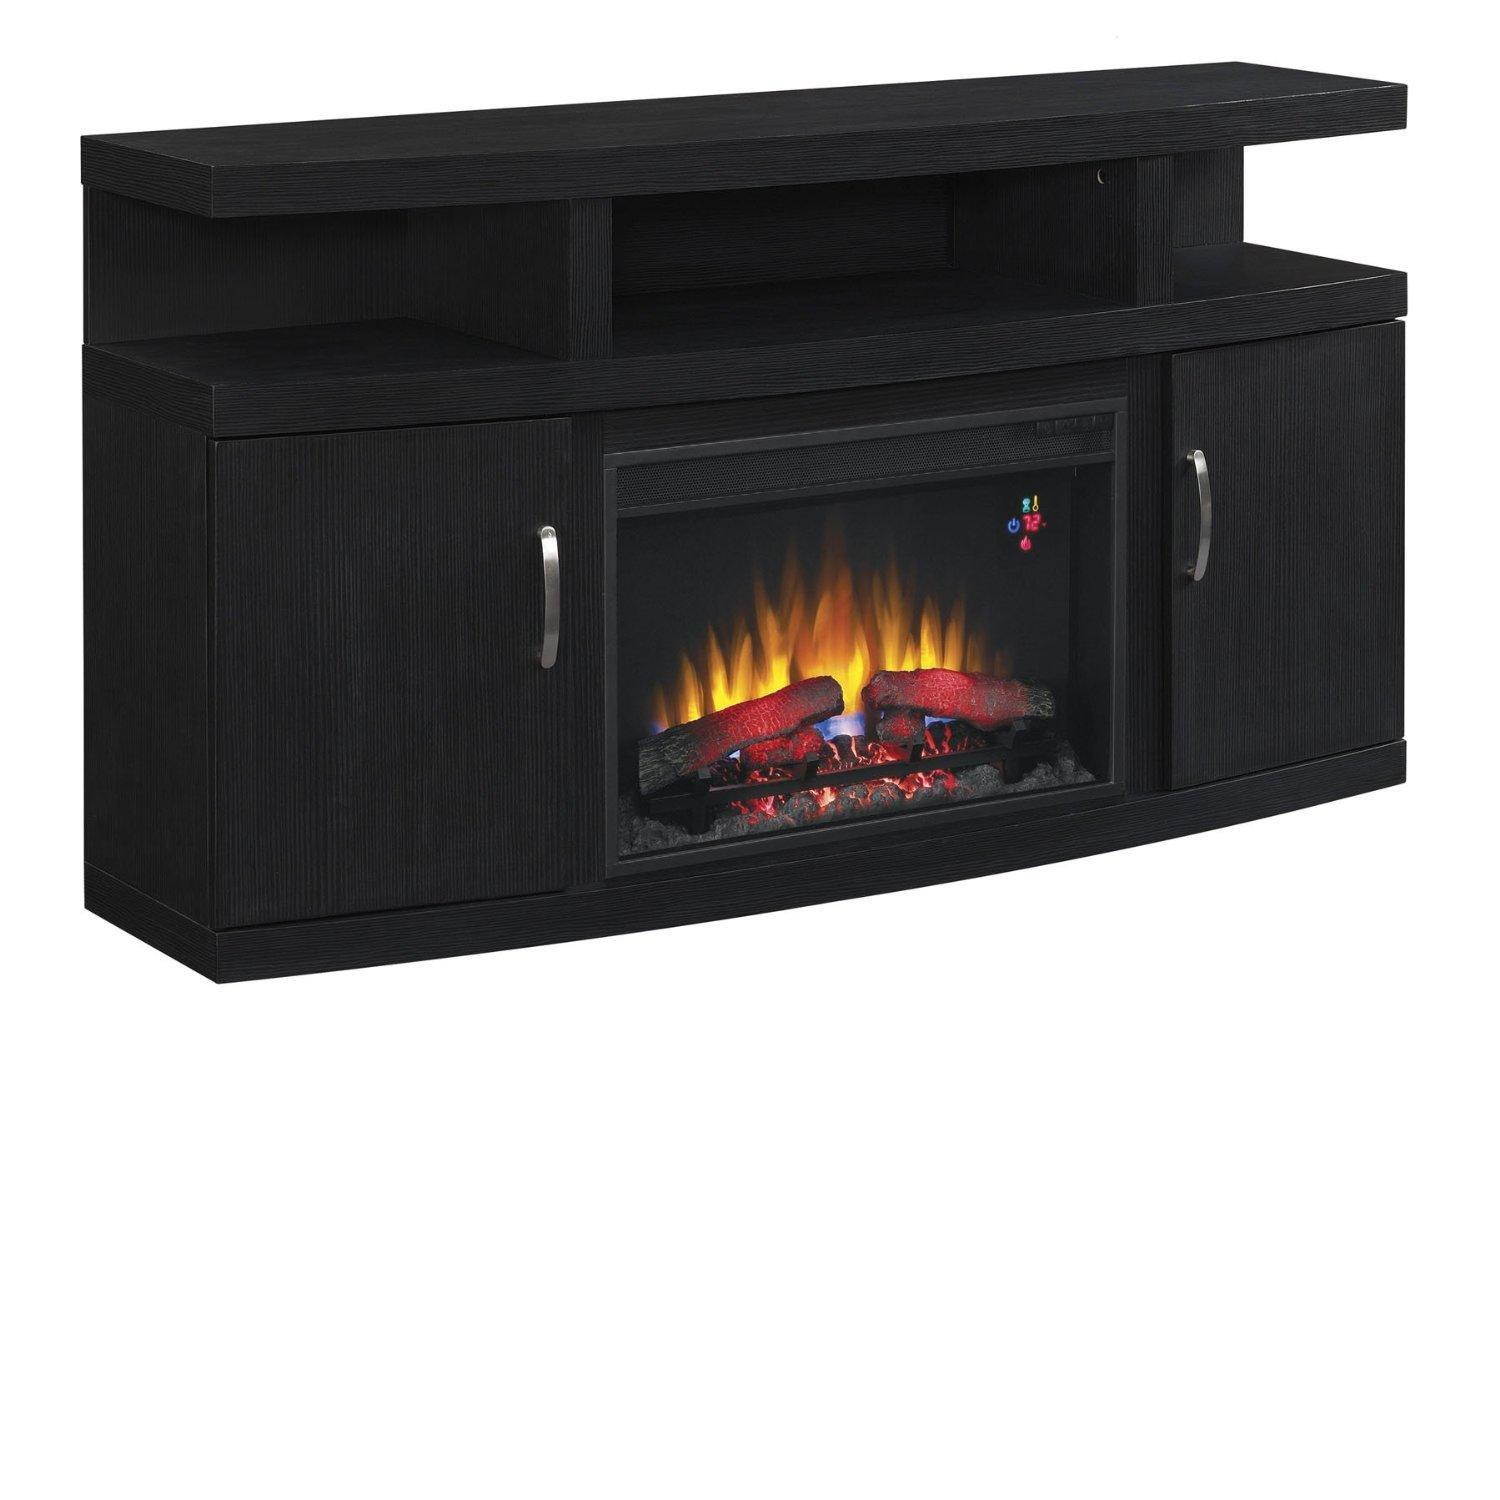 "Morris Home Furnishings Canter Canter 60"" Console with Fireplace - Item Number: 256110520"